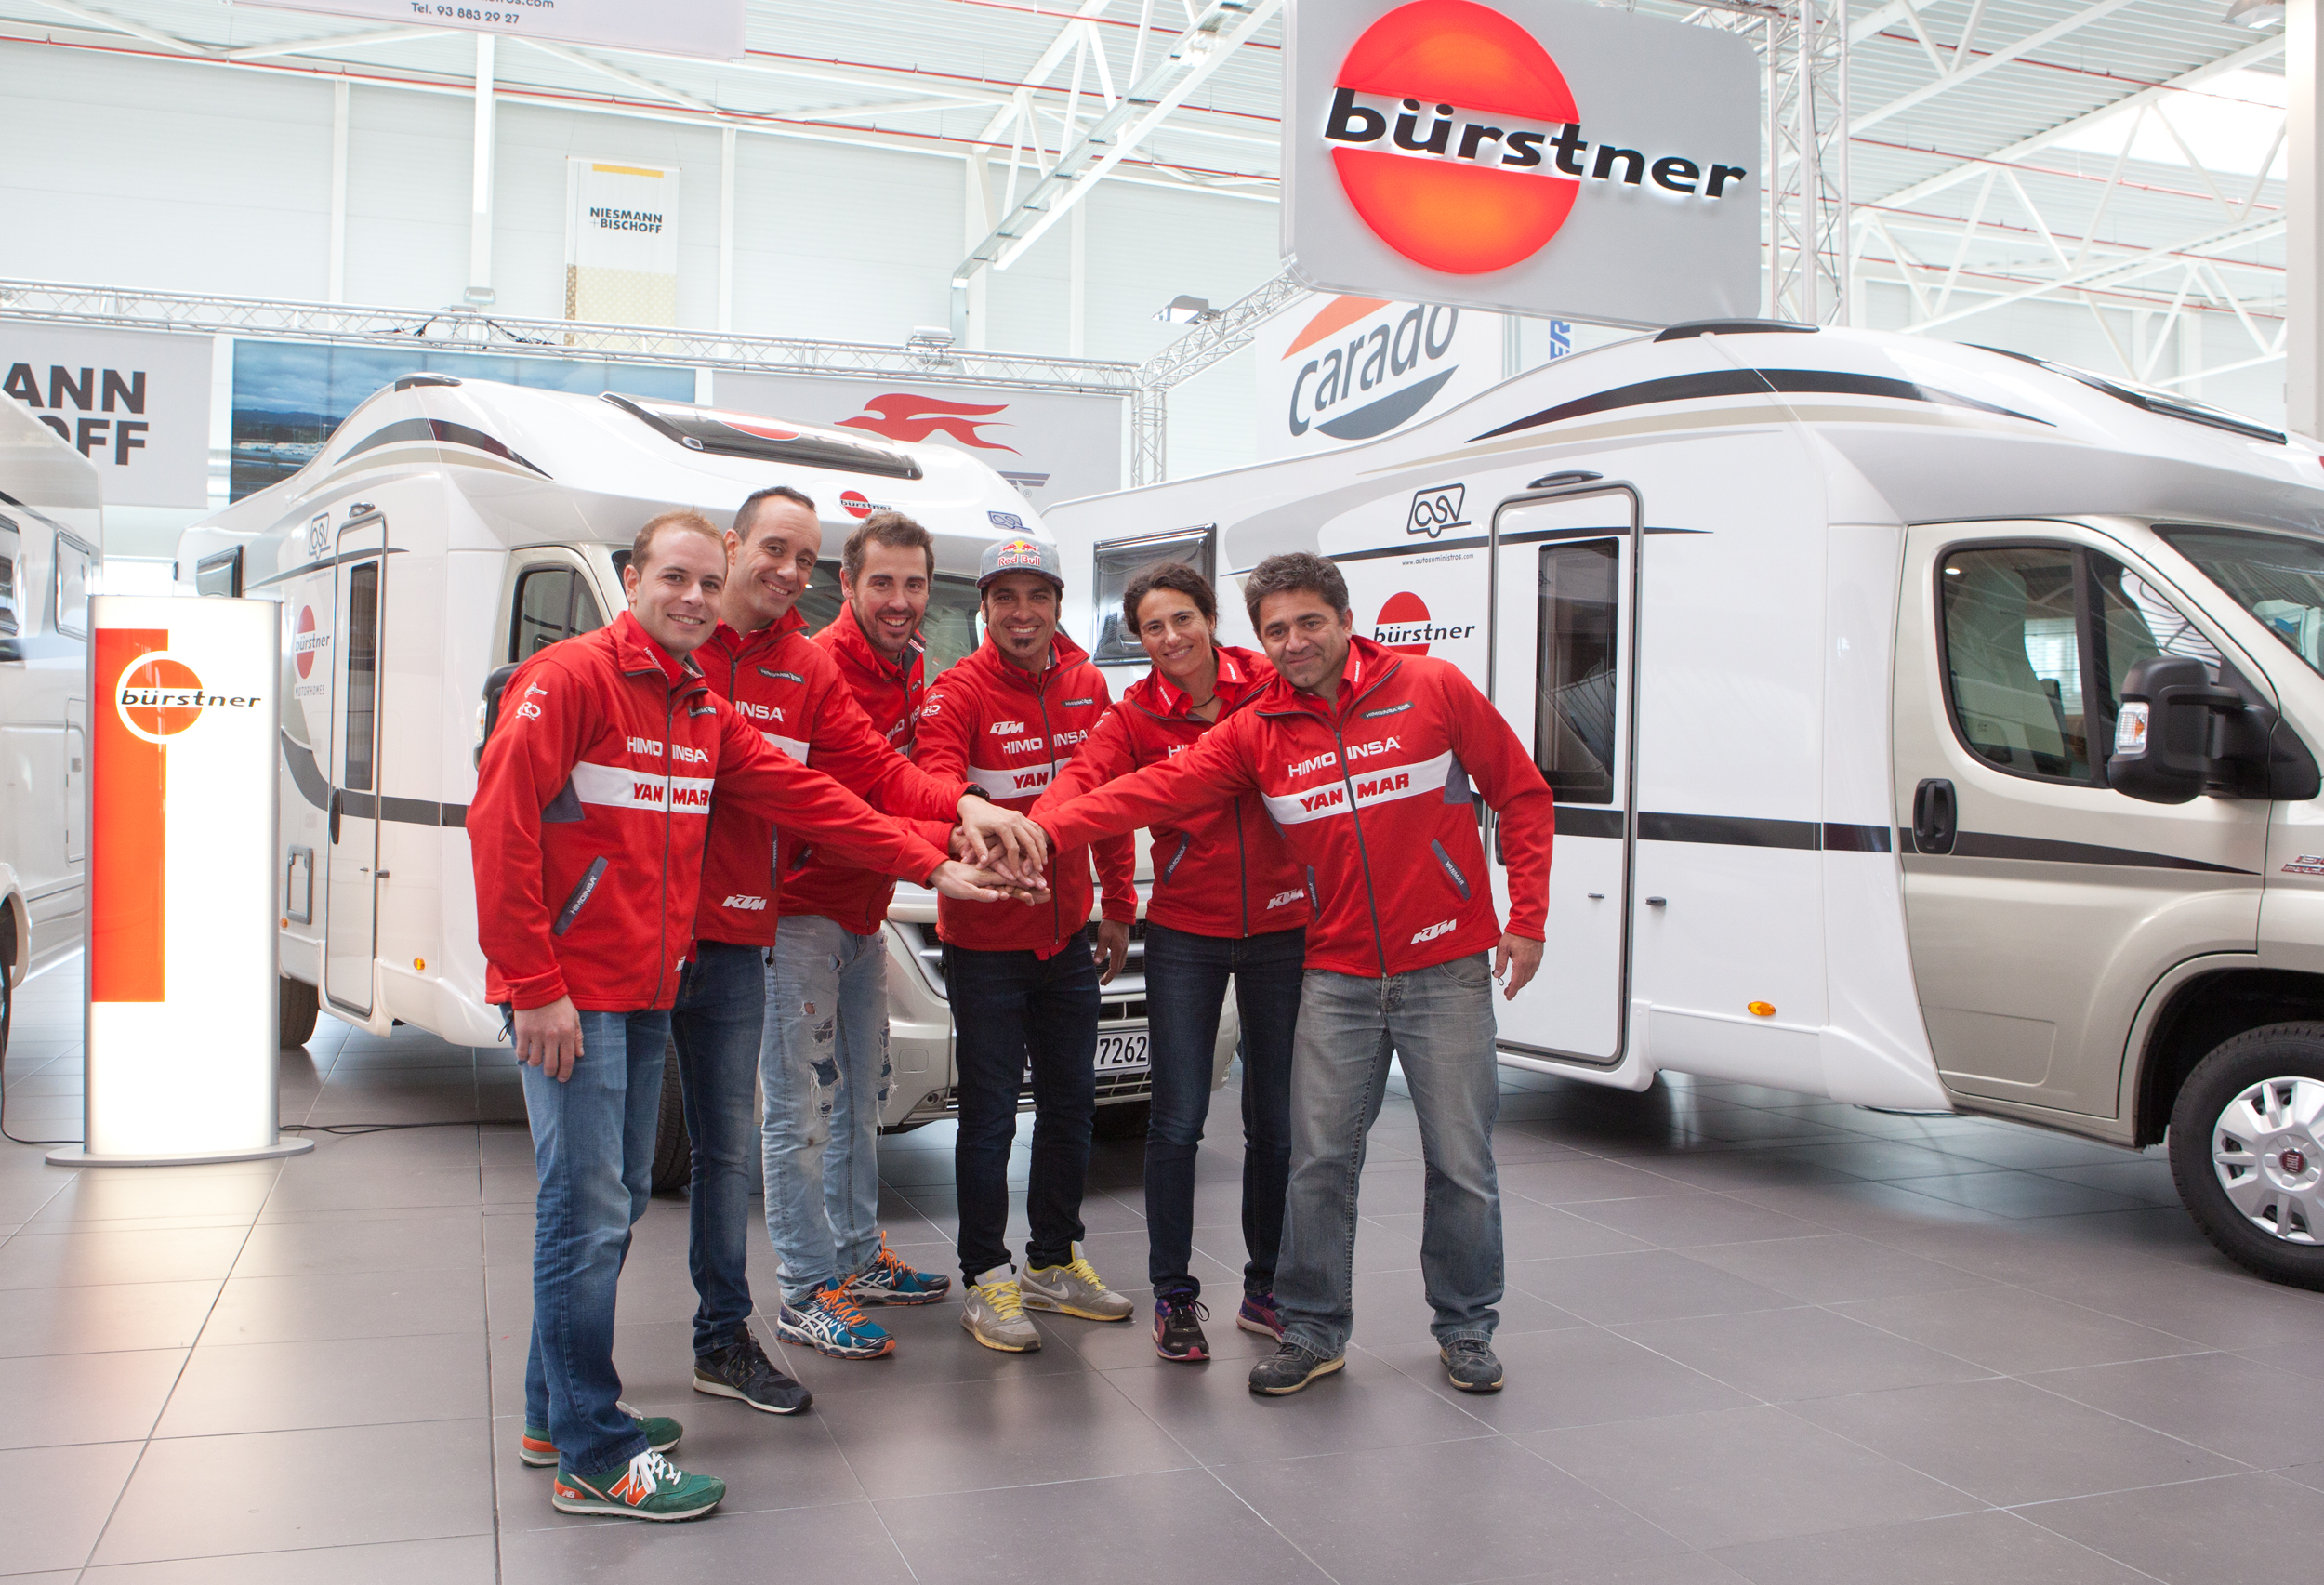 Lliurament de autocarvanes a l'Himoinsa Racing Team